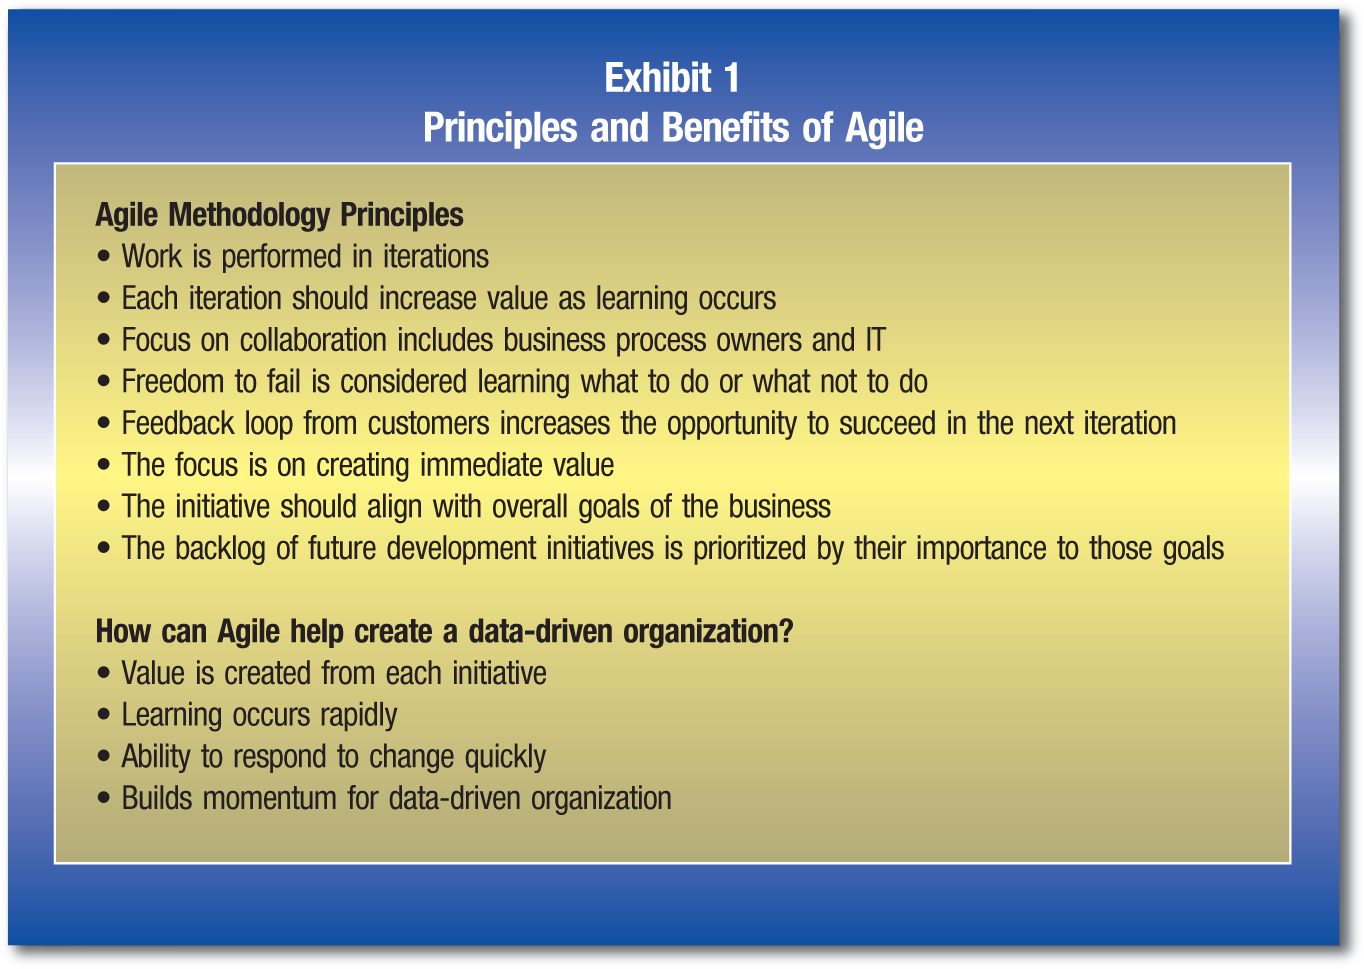 Agile Methodology Principles Work is performed in iterations Each iteration should increase value as learning occurs Focus on collaboration includes business process owners and IT Freedom to fail is considered learning what to do or what not to do Feedback loop from customers increases the opportunity to succeed in the next iteration The focus is on creating immediate value The initiative should align with overall goals of the business The backlog of future development initiatives is prioritized by their importance to those goals How can Agile help create a data-driven organization? Value is created from each initiative Learning occurs rapidly Ability to respond to change quickly Builds momentum for data-driven organization